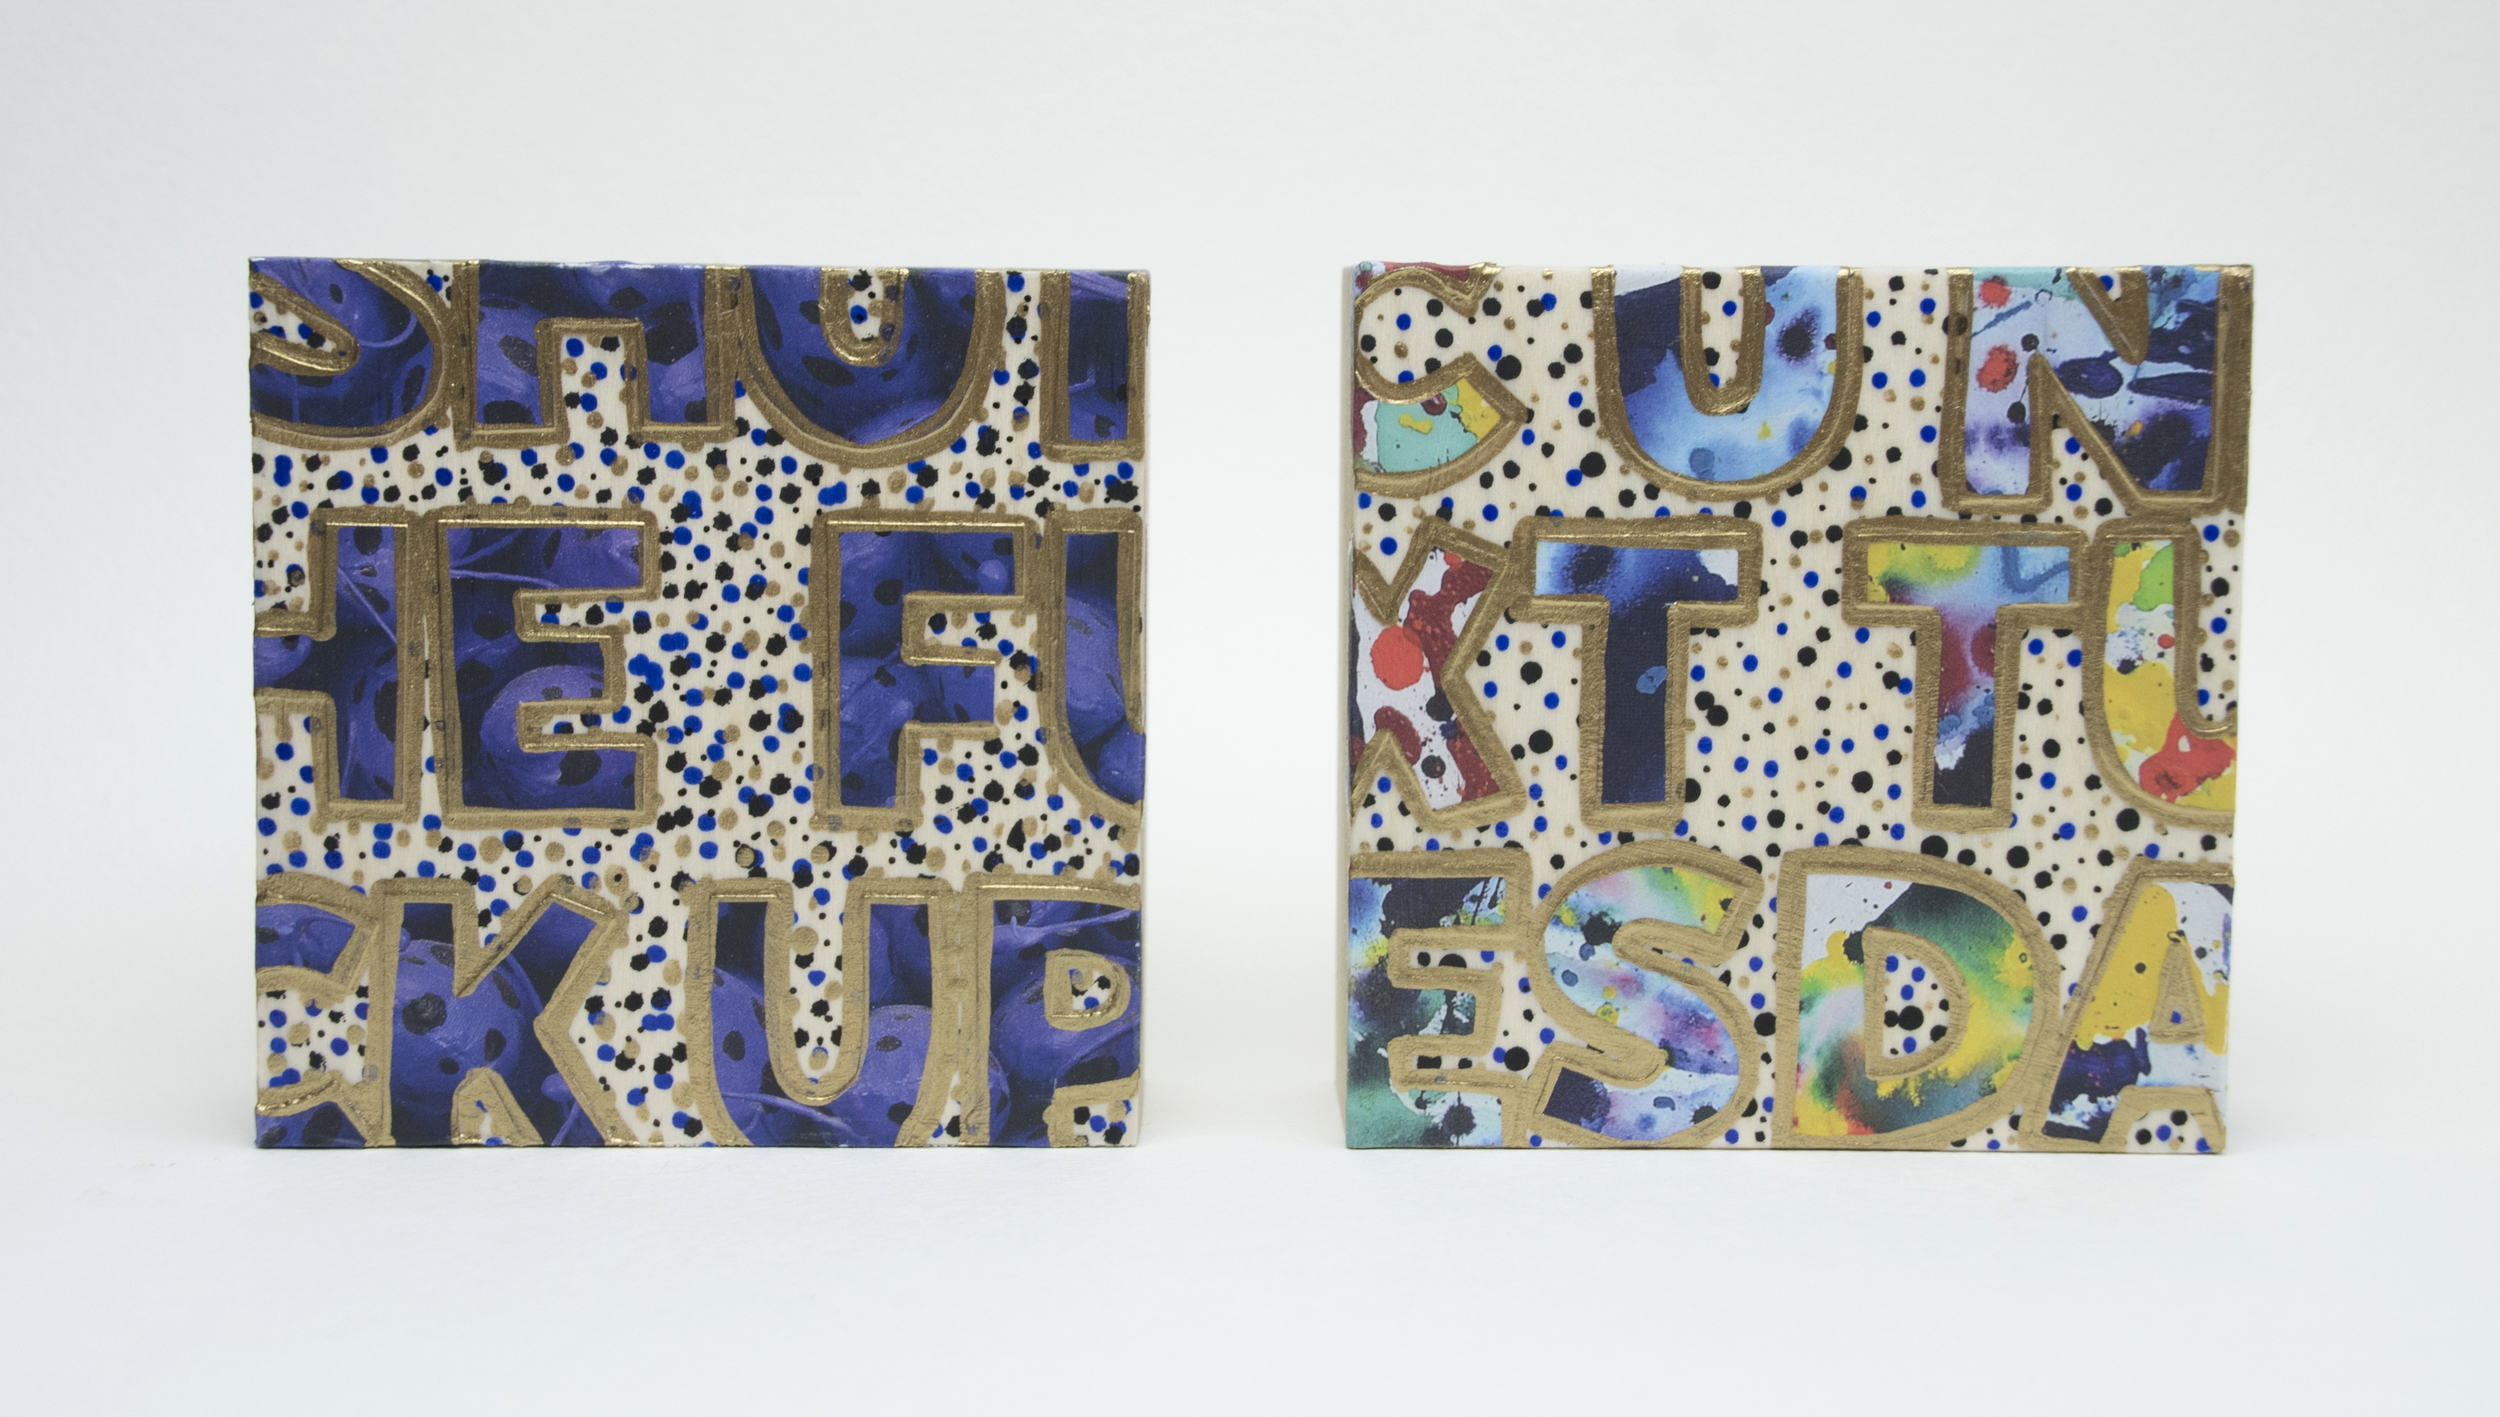 Shut The Fuck Up / C U Next Tuesday , 2016 Acrylic, enamel, felt tip marker and catalog pages on wood 4 x 4 x 1 5/8 inches, each